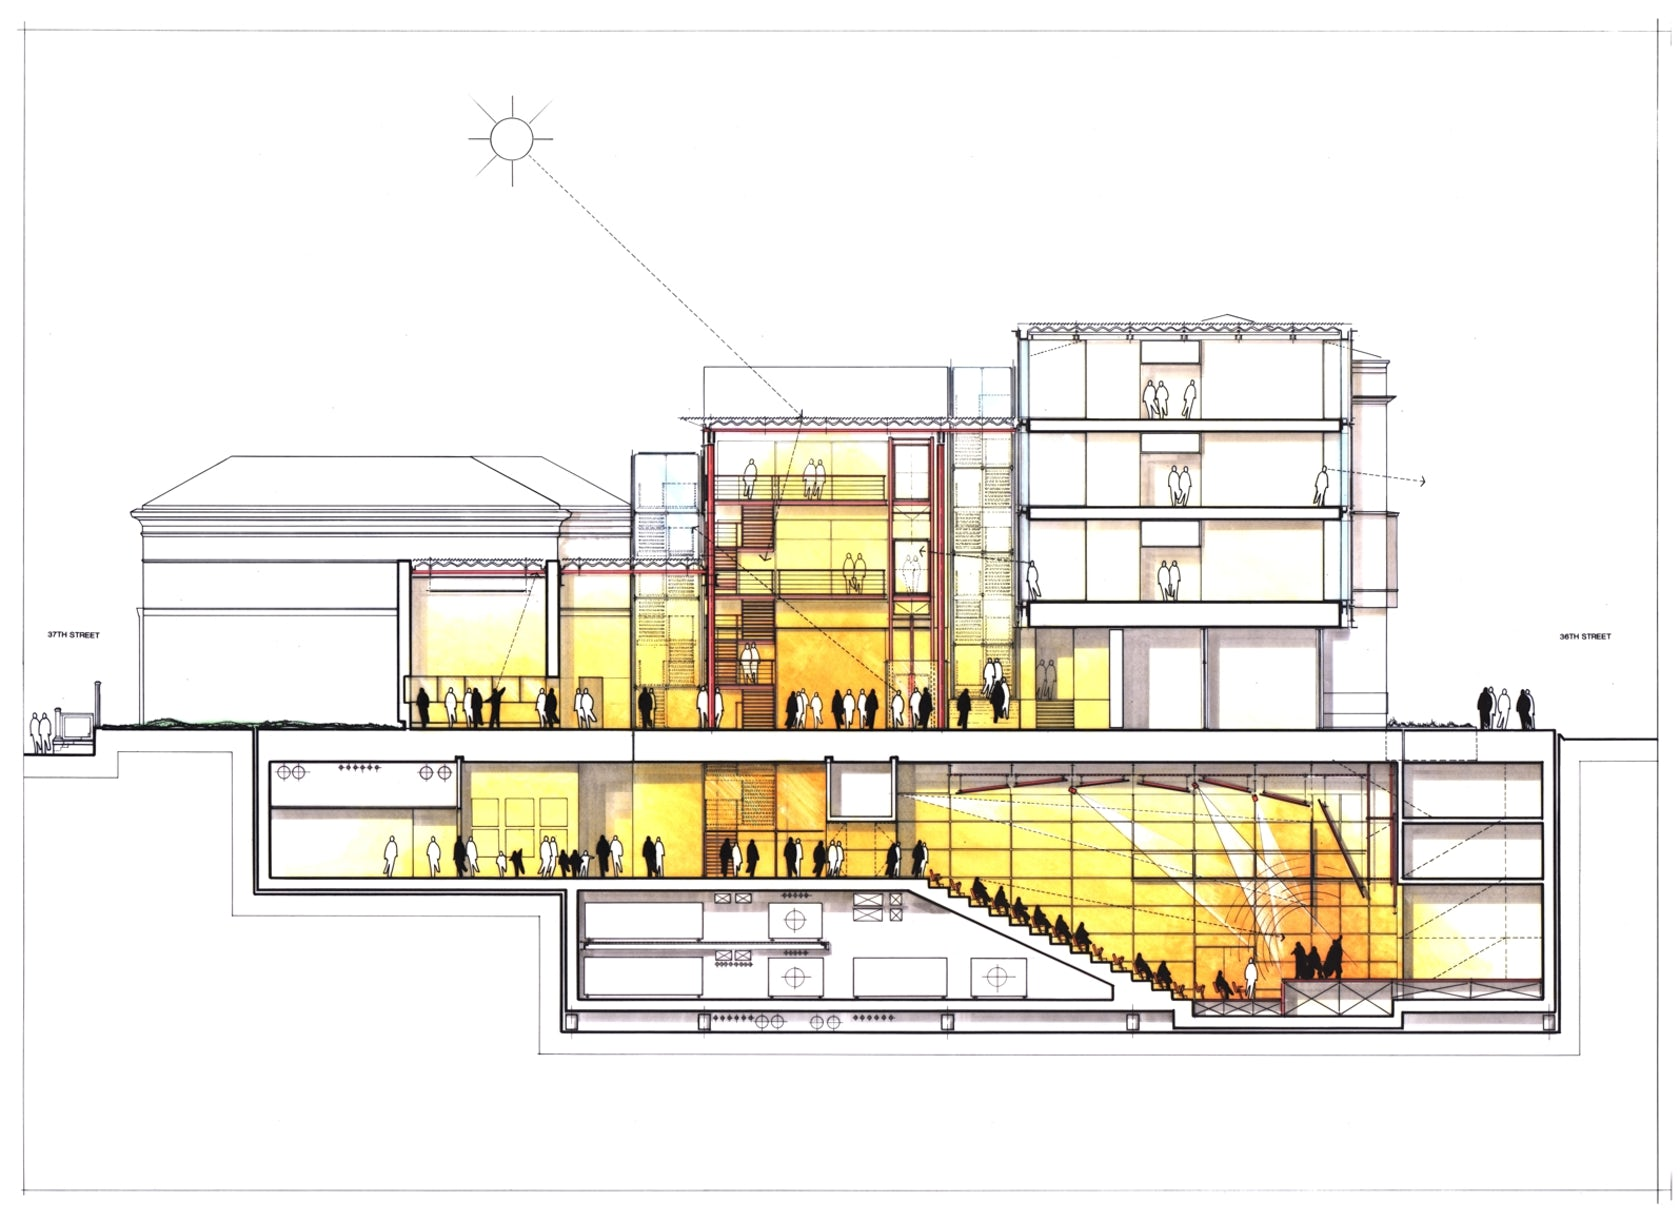 Renovation and Expansion of the Morgan Library on Architizer